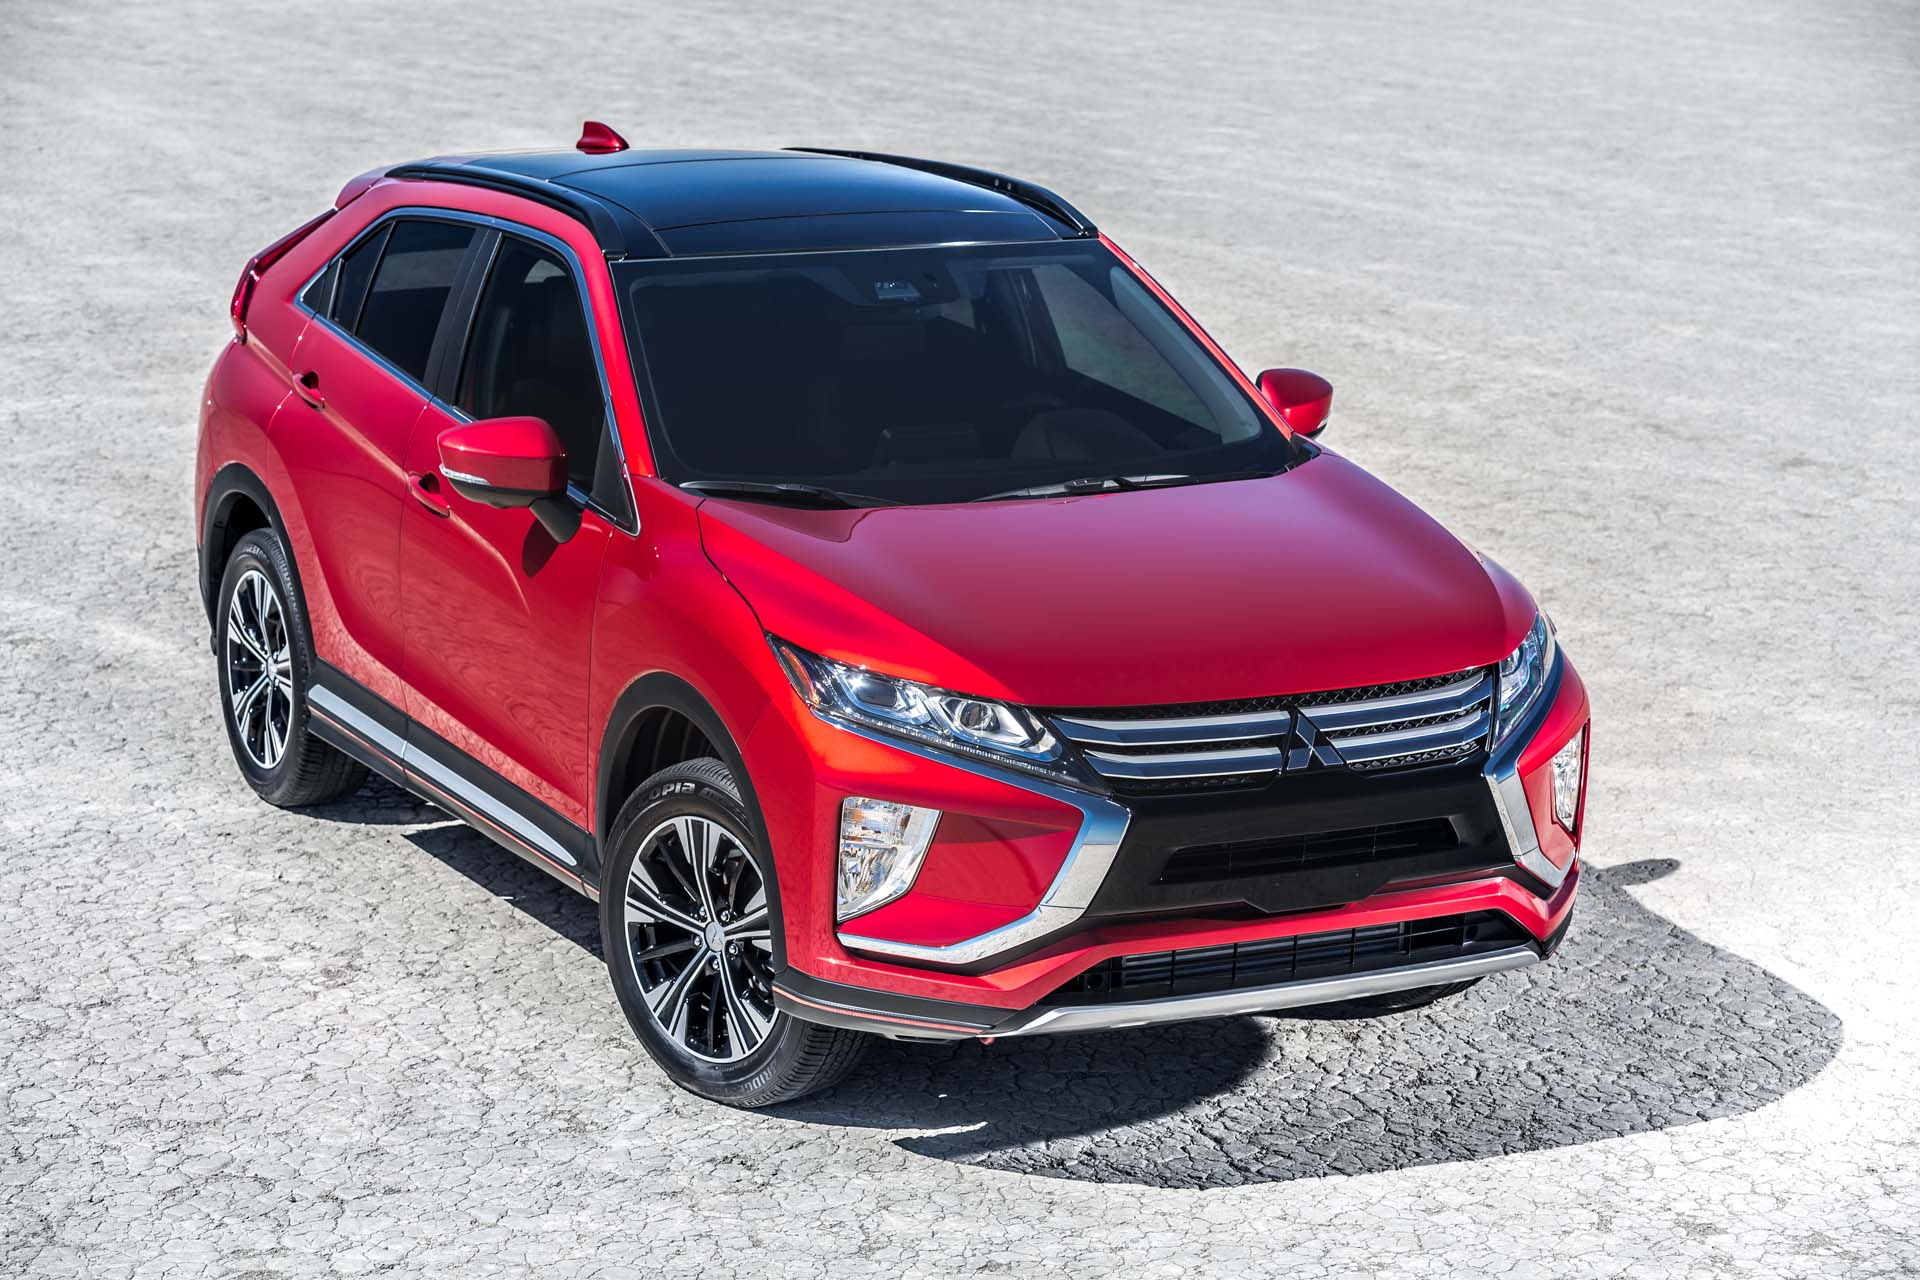 2018 Mitsubishi Eclipse Cross Review Update 8 Bit In A 4k World 2015 Efficiency And Velocity Best Auto Insurance